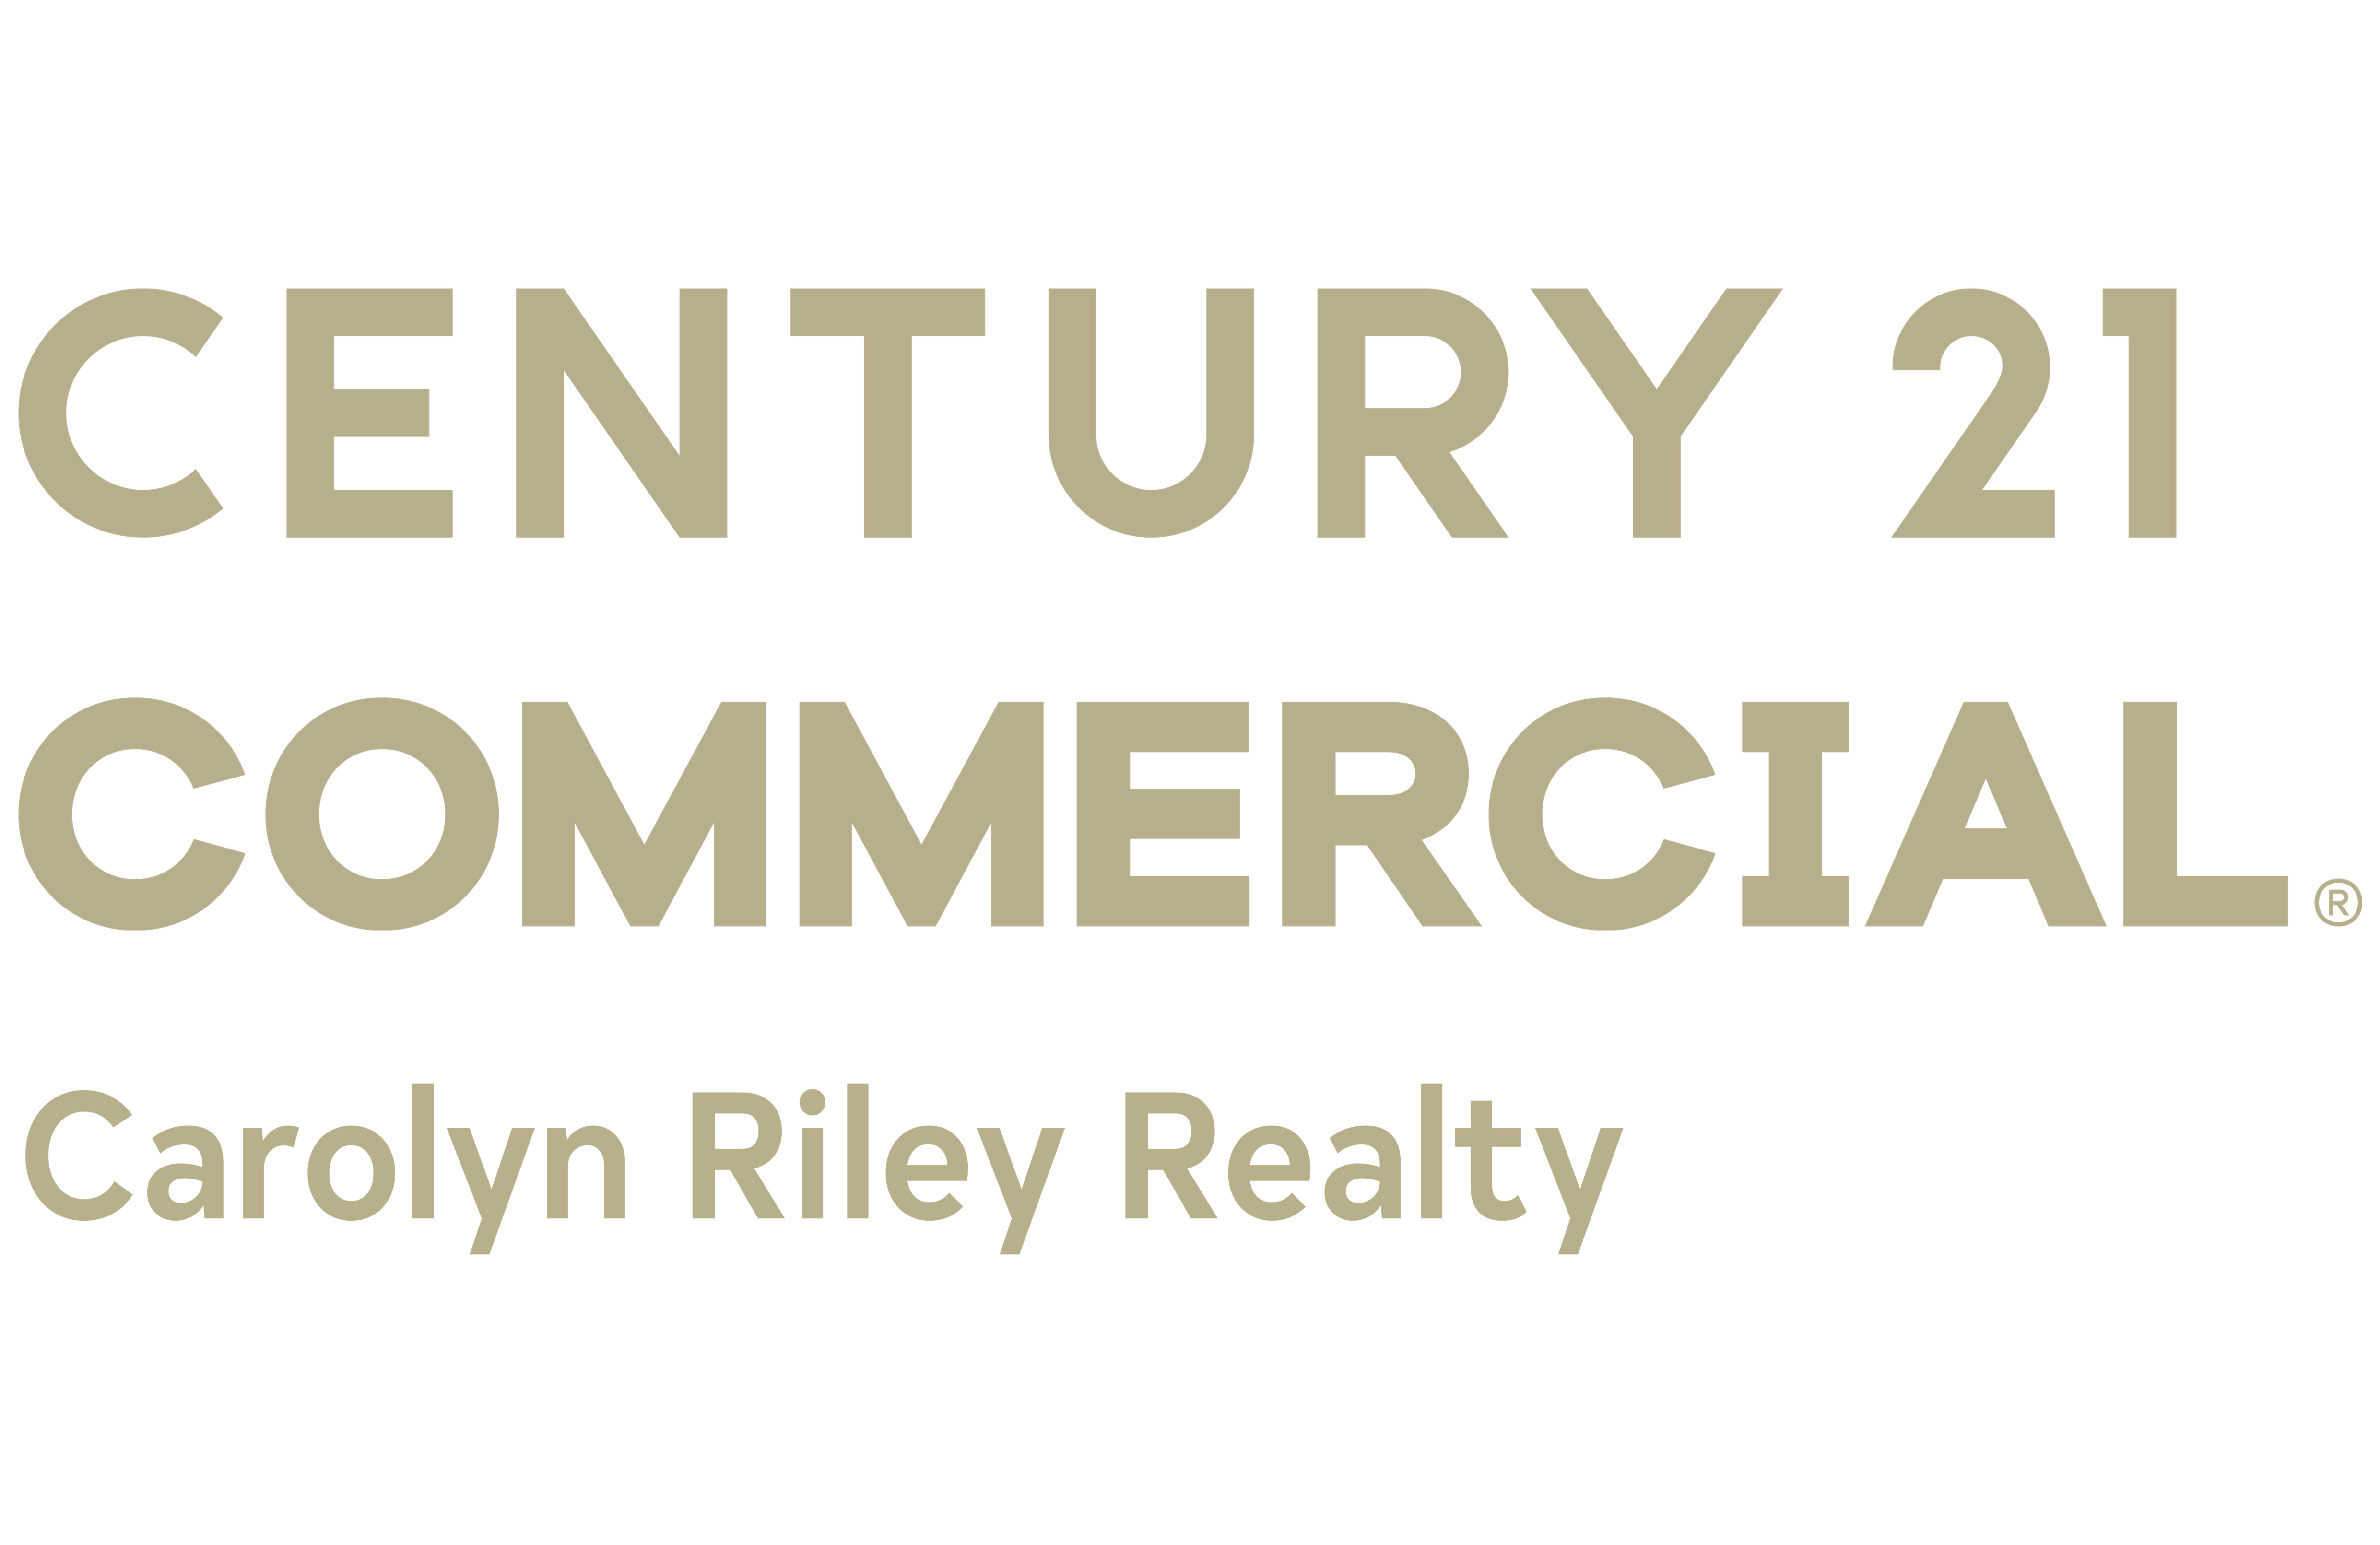 CENTURY 21 Carolyn Riley Realty